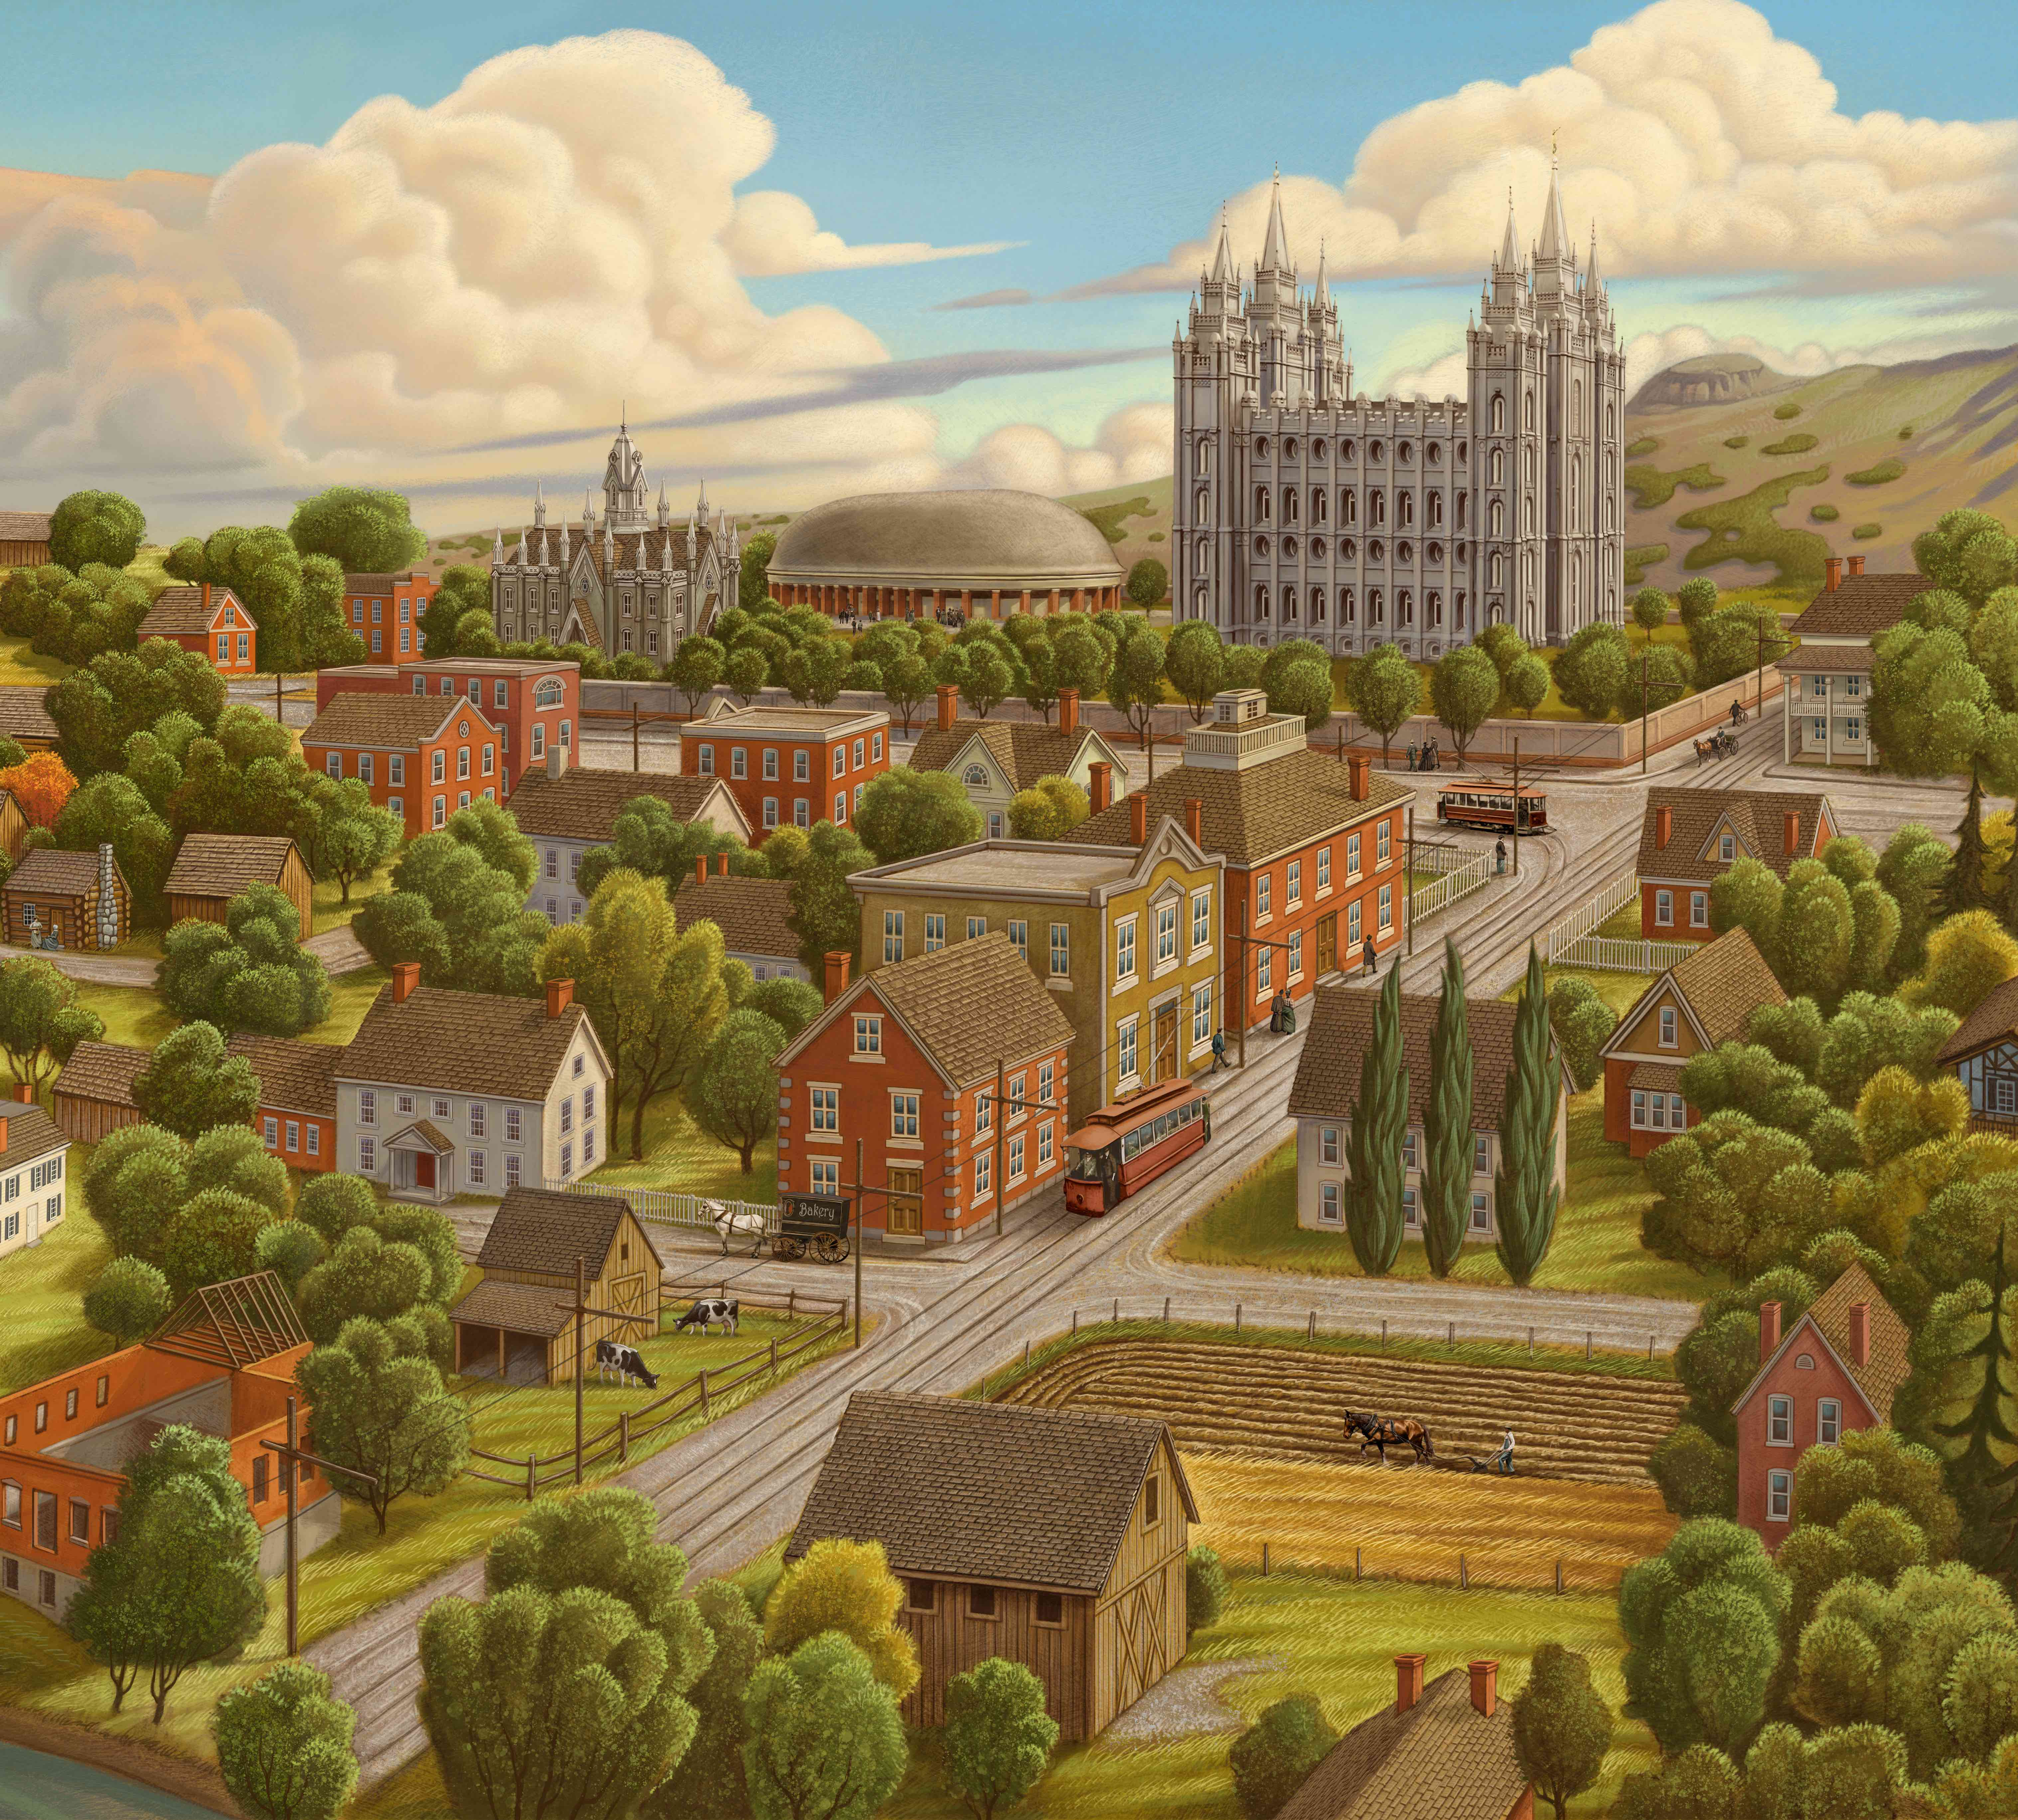 An artist's depiction of the Salt Lake Valley in the early years of pioneer settlement.